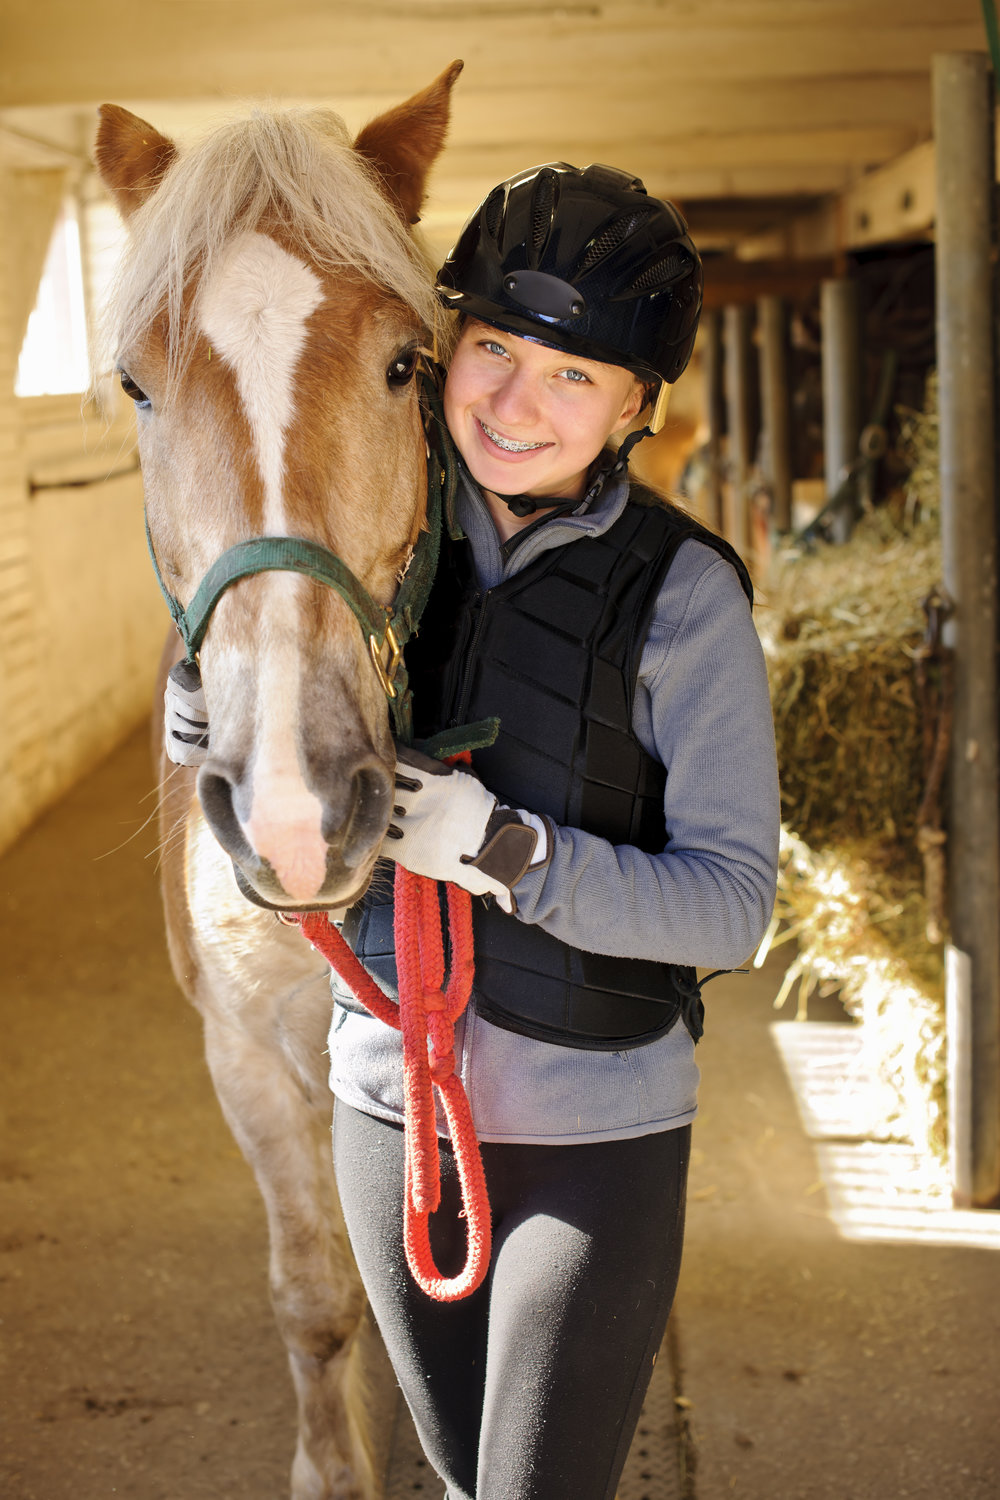 The equestrian program includes: 1) riding lessons, 2) equine themed activities in other subjects, 3) equine science, 4) 30-60% of each of the Ontario Secondary School physical education & health courses in outdoor activities for grades 9-12 (PAD1O/PAD2O/PAD3O/PAD4O)